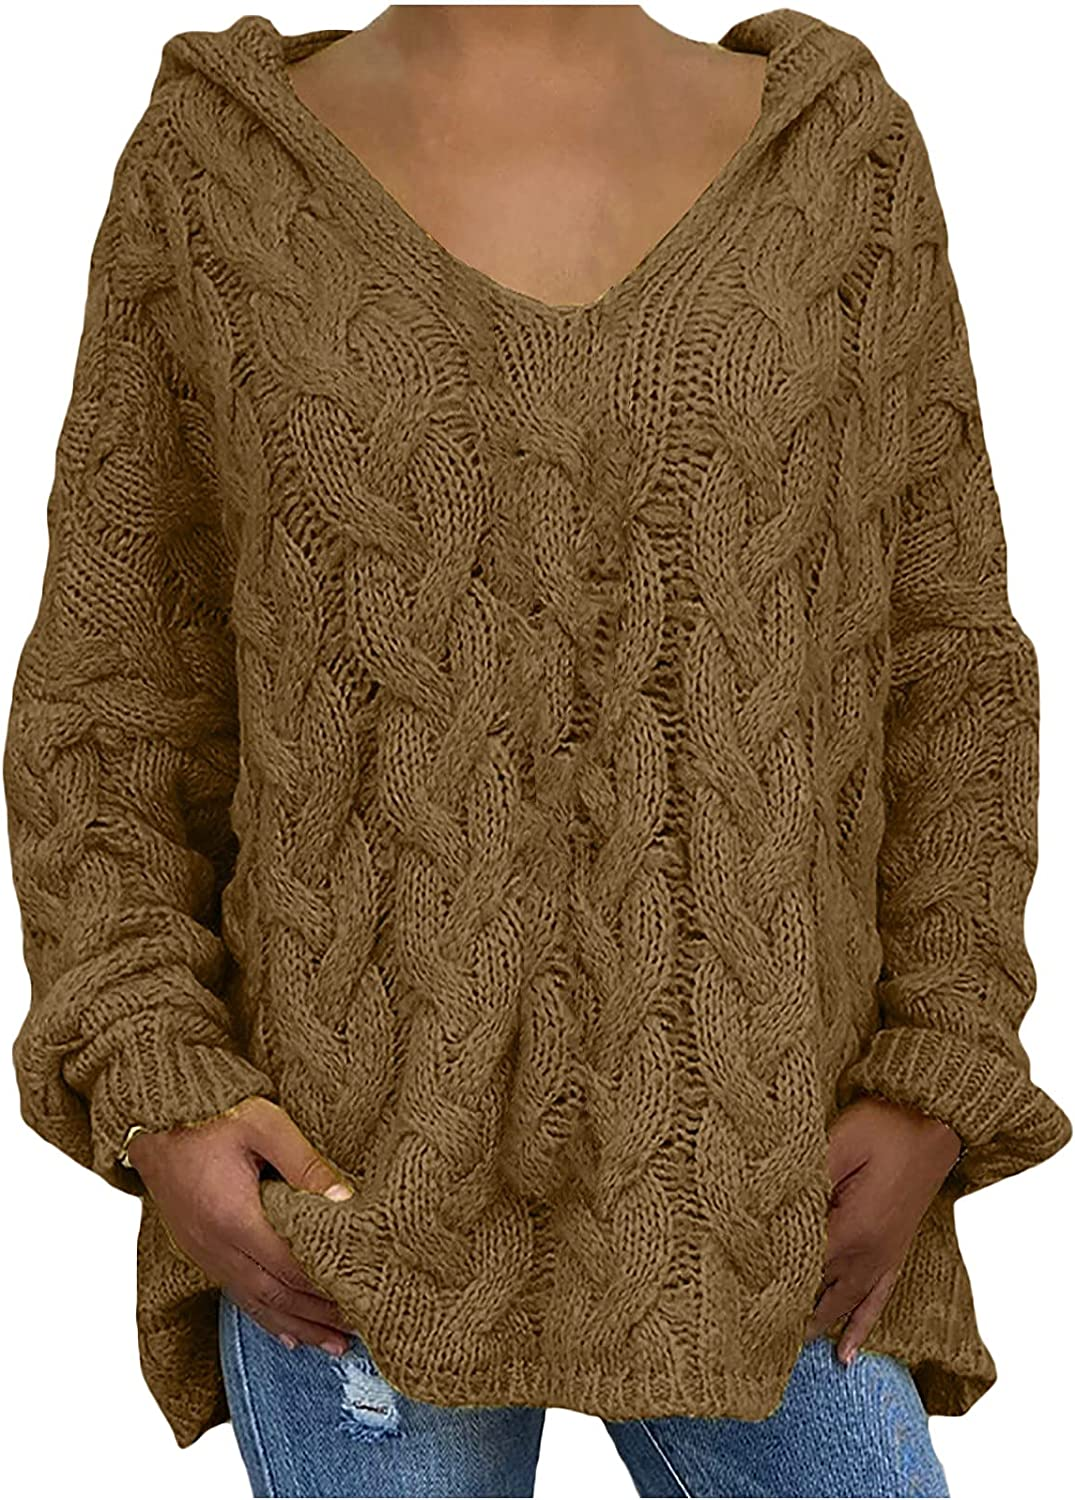 Womens Sweaters Fall,Fashion Solid Color V-Neck Knitted Hooded Tops Sexy Hollow Out Pullover Fall Ladies Long Sleeve Blouse